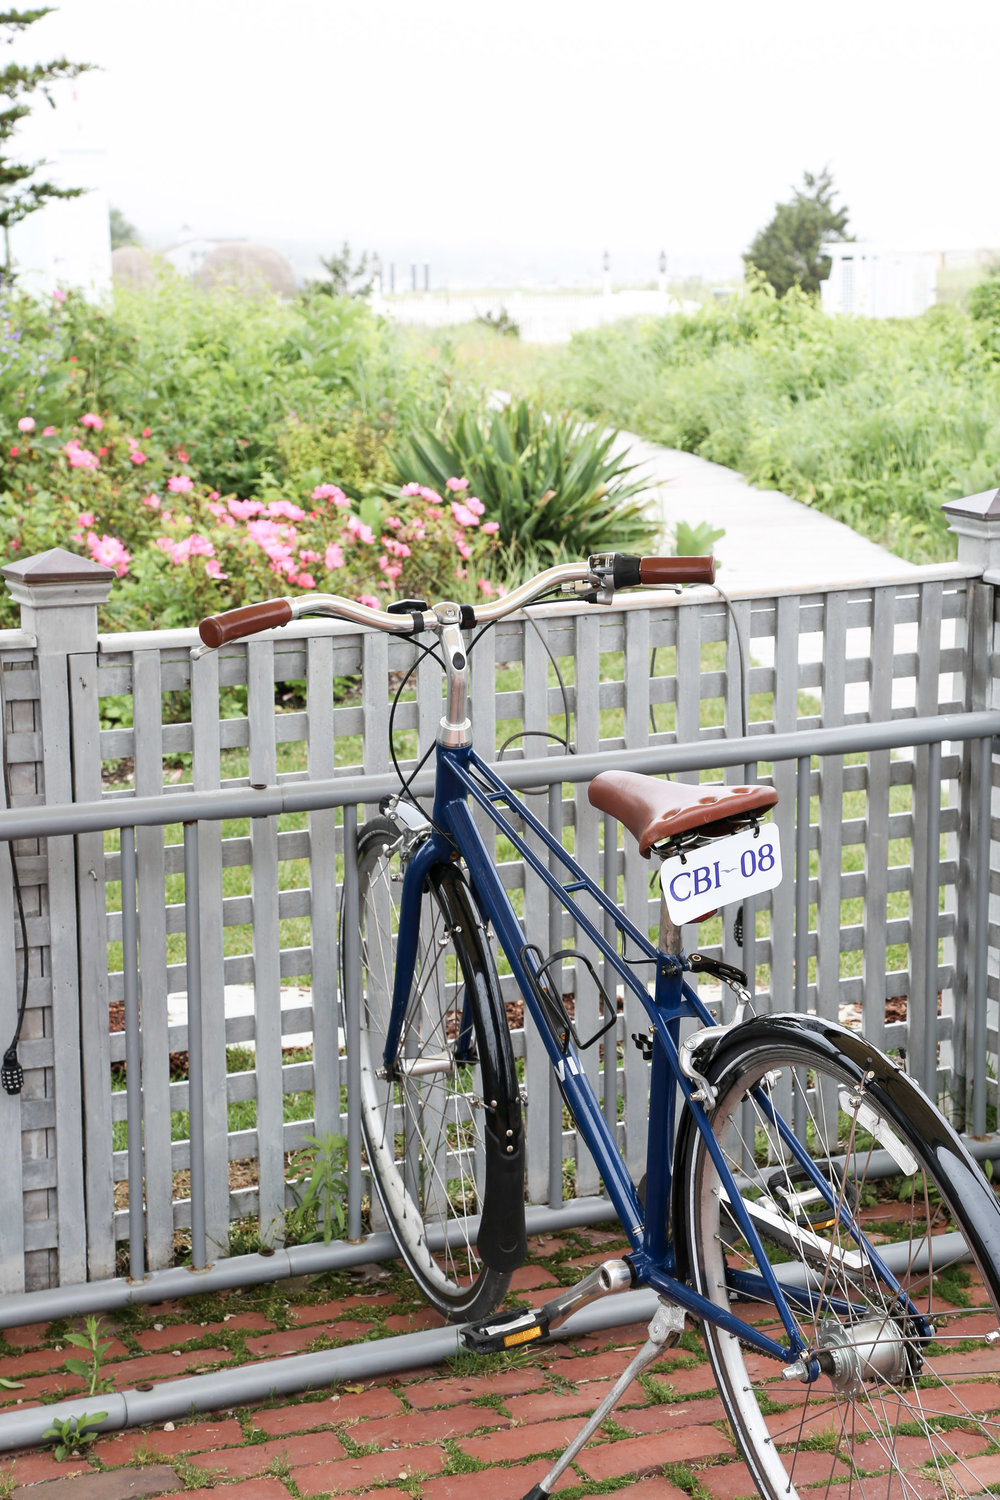 Complimentary bikes available for guests to use